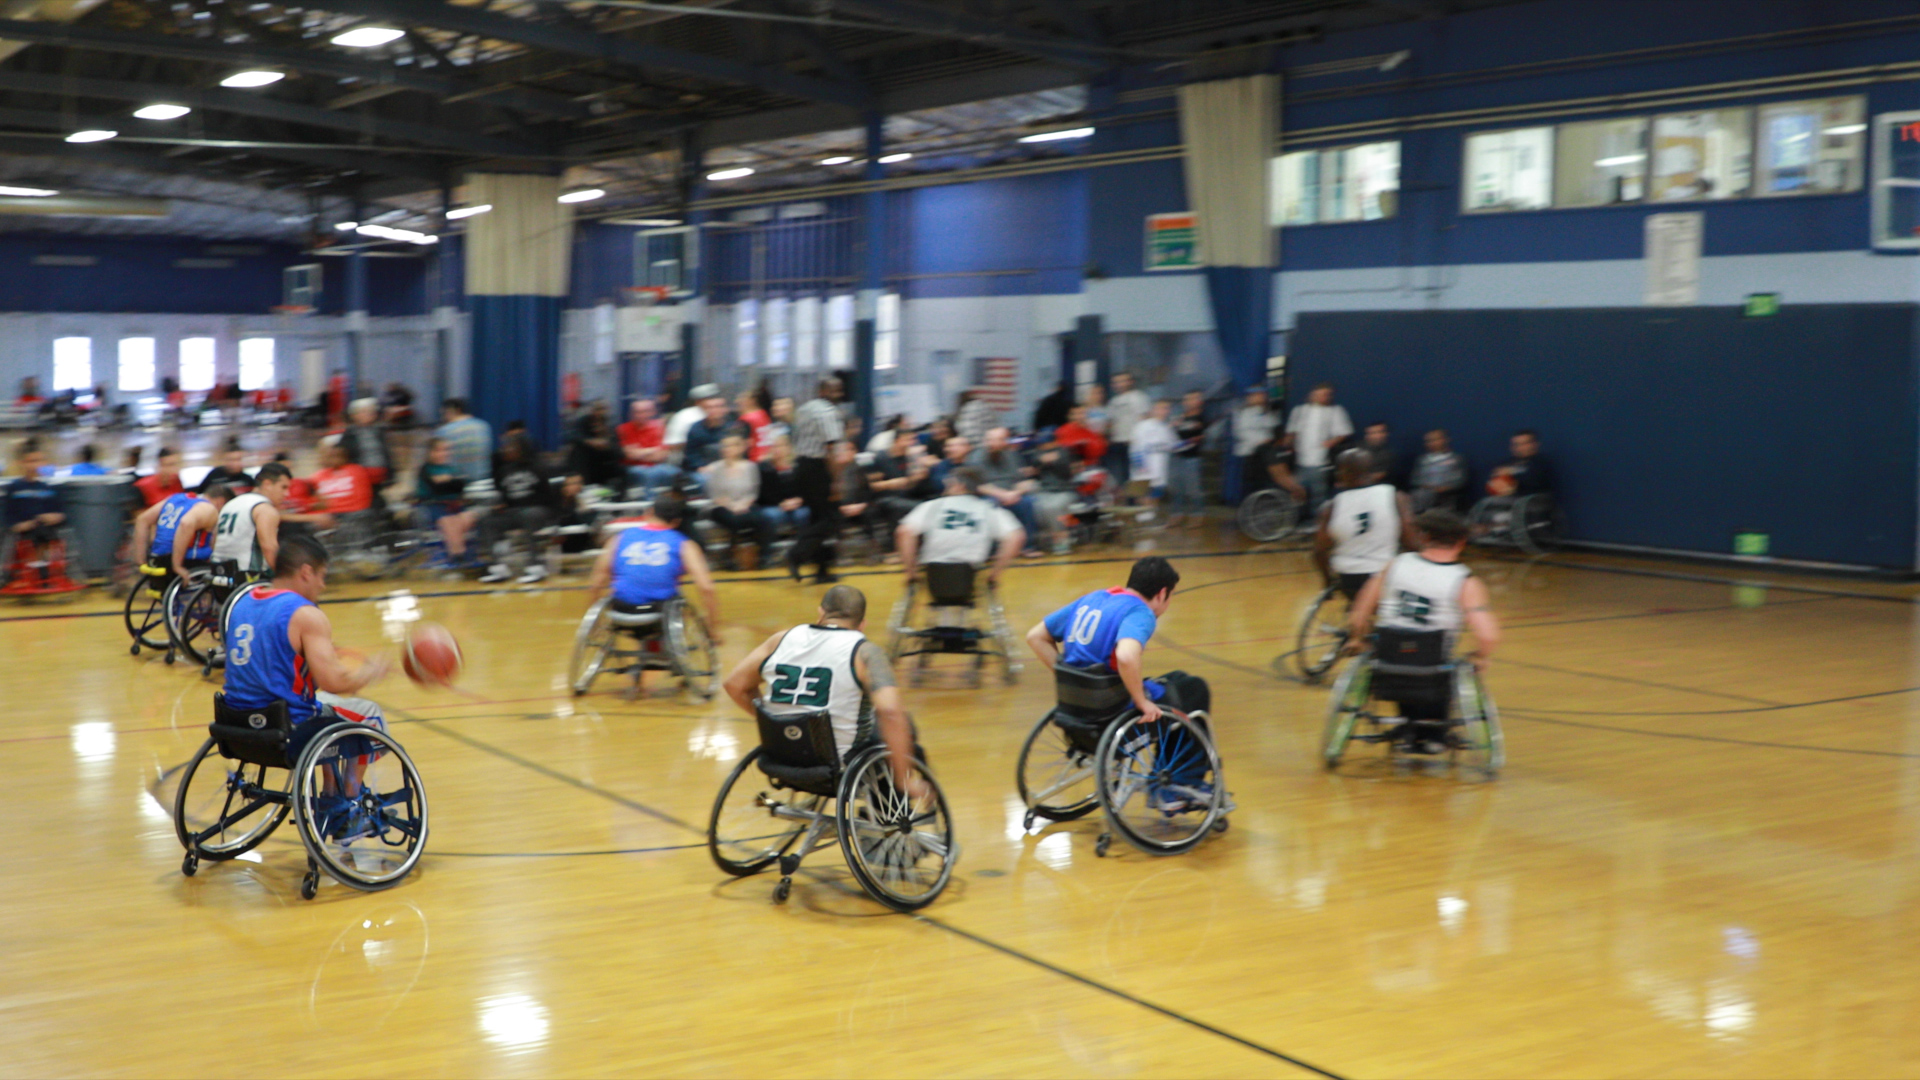 ASRA athletes playing wheel chair basketball.